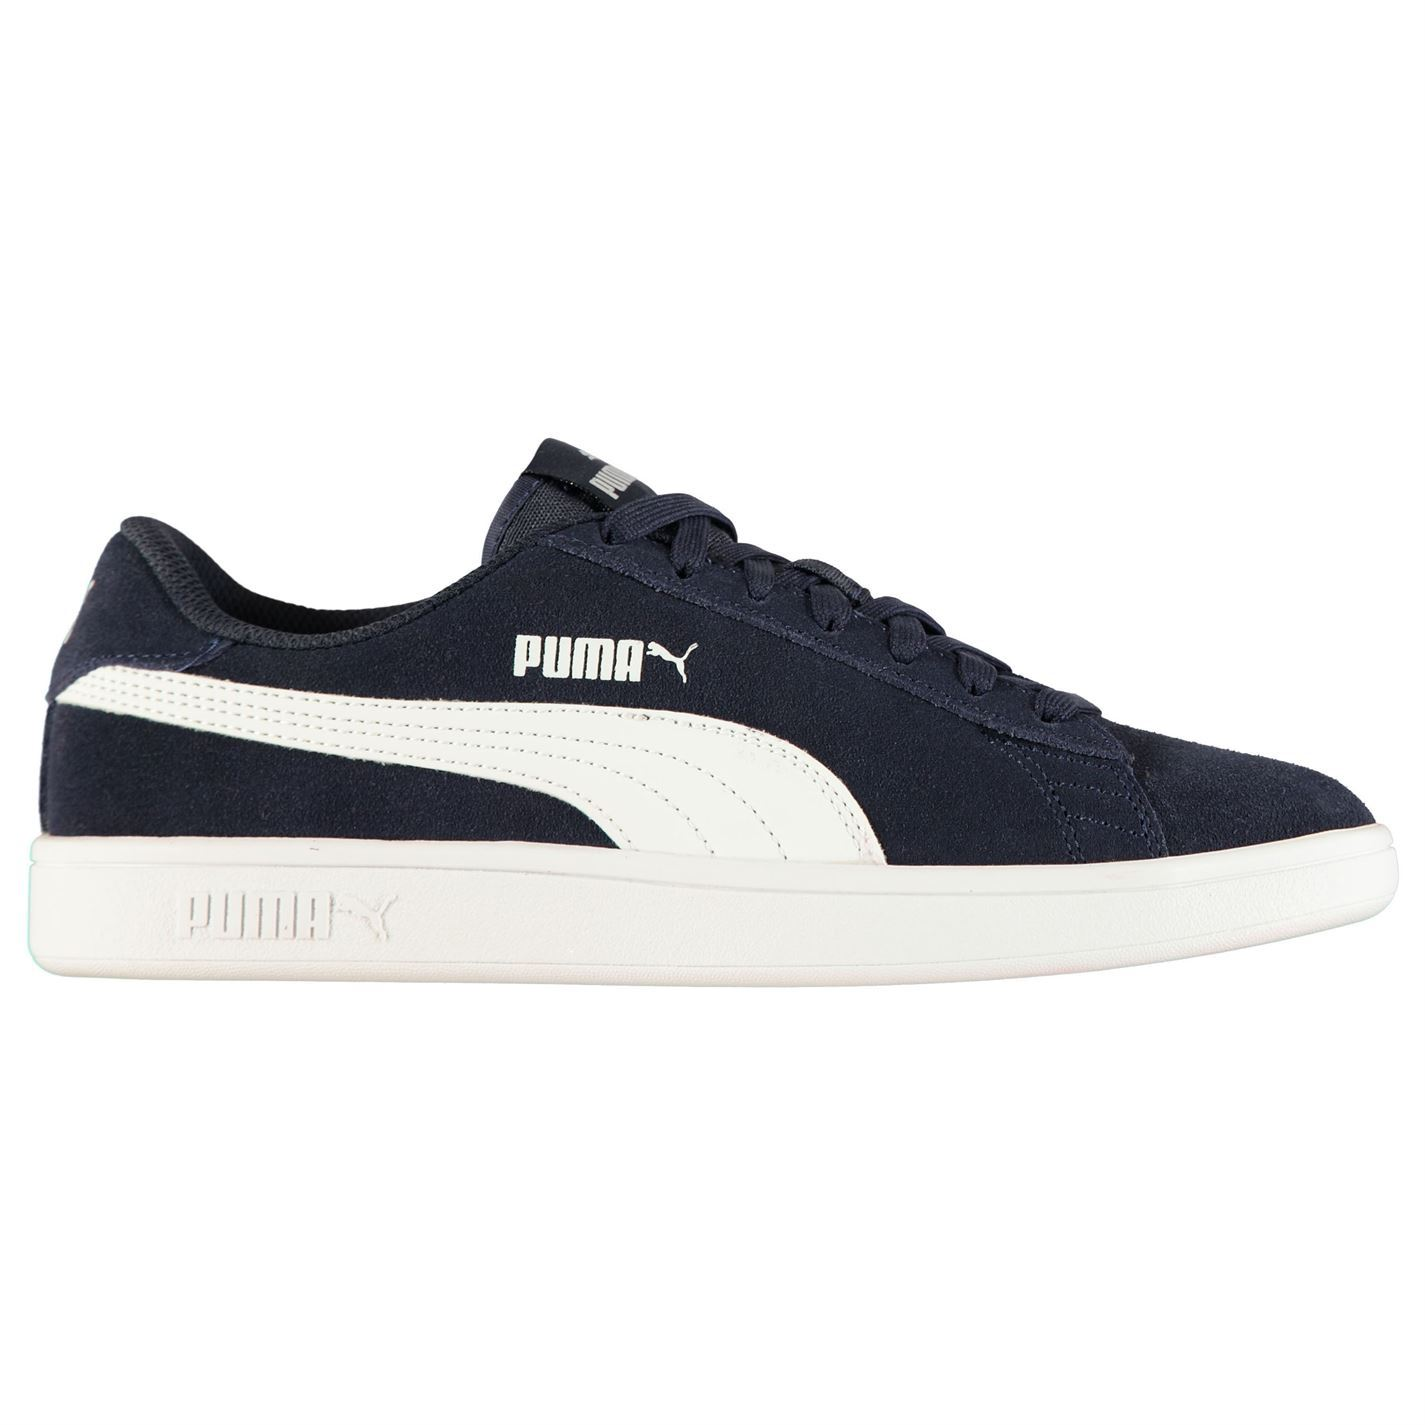 Puma-Smash-V2-Suede-Trainers-Mens-Shoes-Sneakers-Athleisure-Footwear thumbnail 11